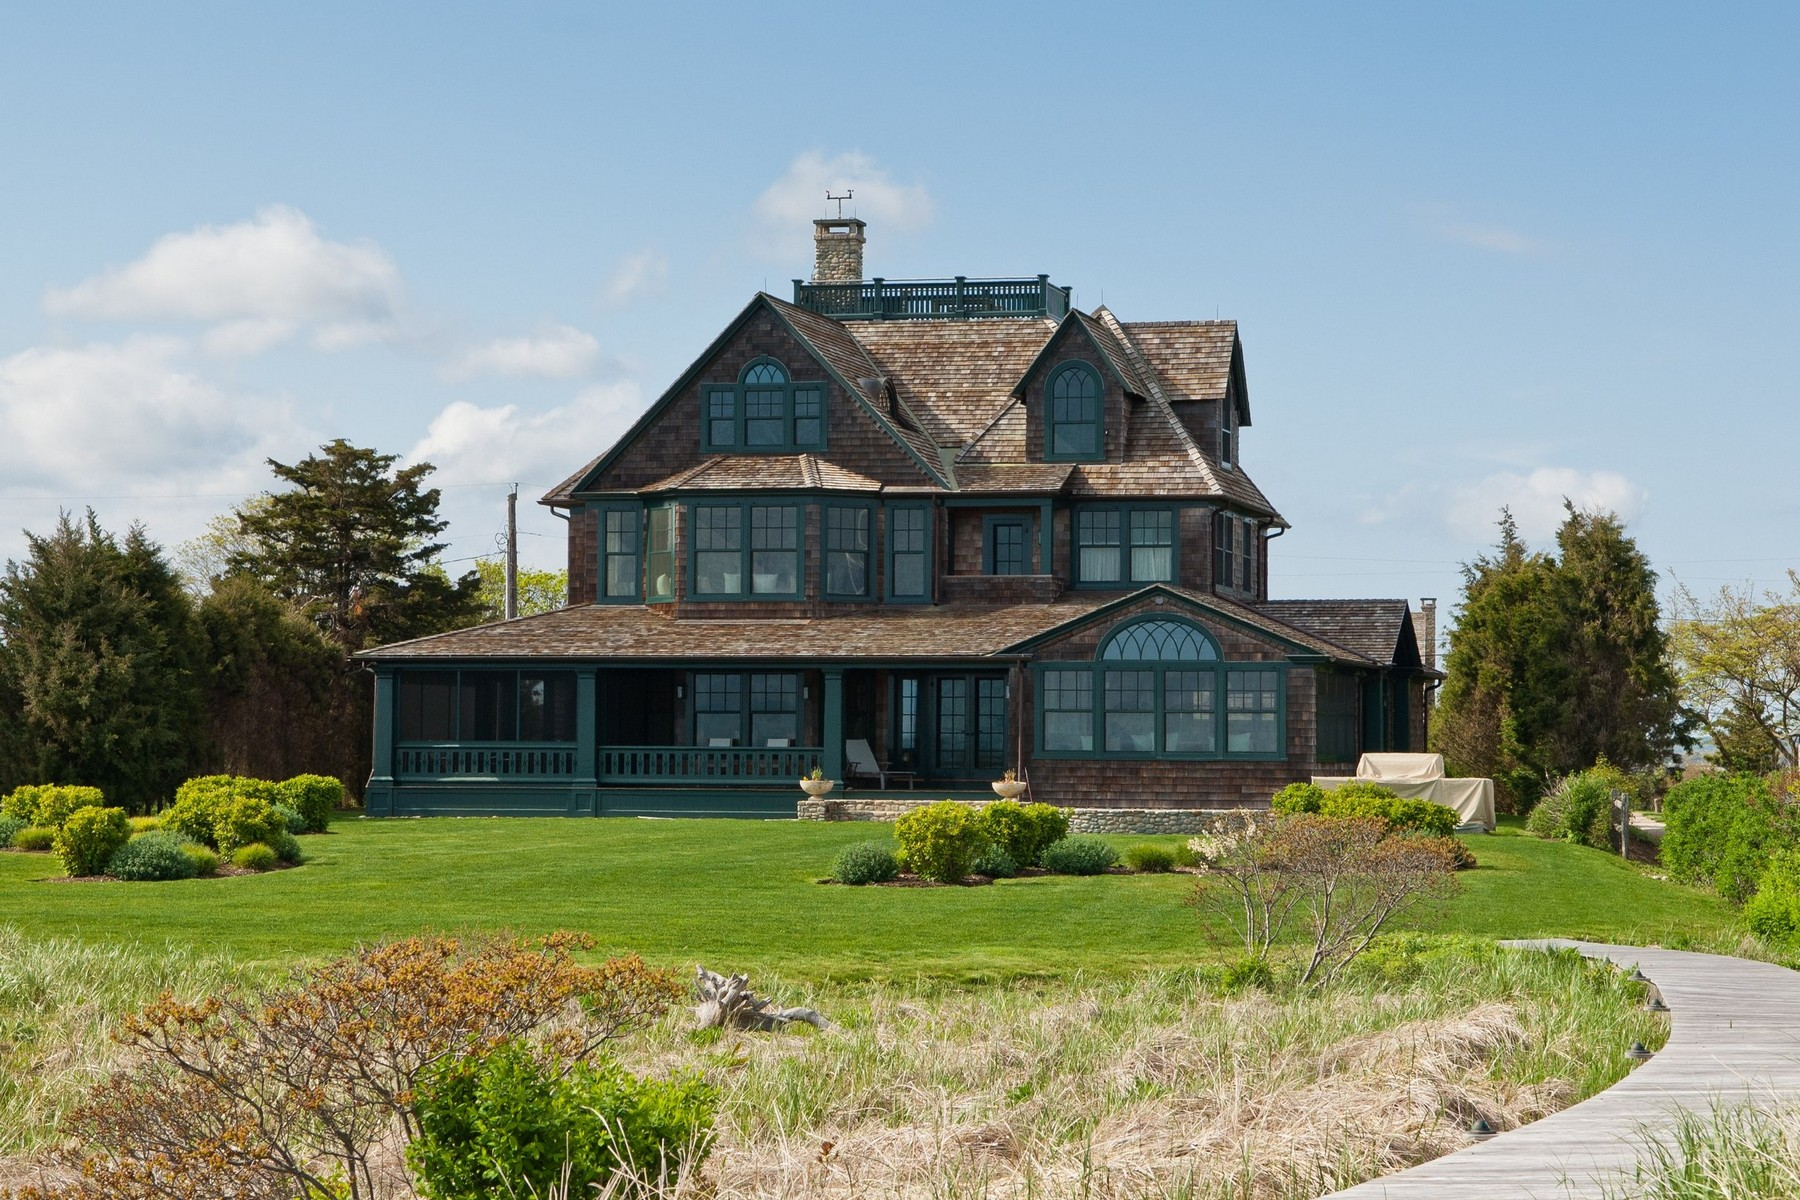 Casa Unifamiliar por un Venta en Magical Seaside Enclave of Fenwick 102 A Sequassen Ave Old Saybrook, Connecticut 06475 Estados Unidos